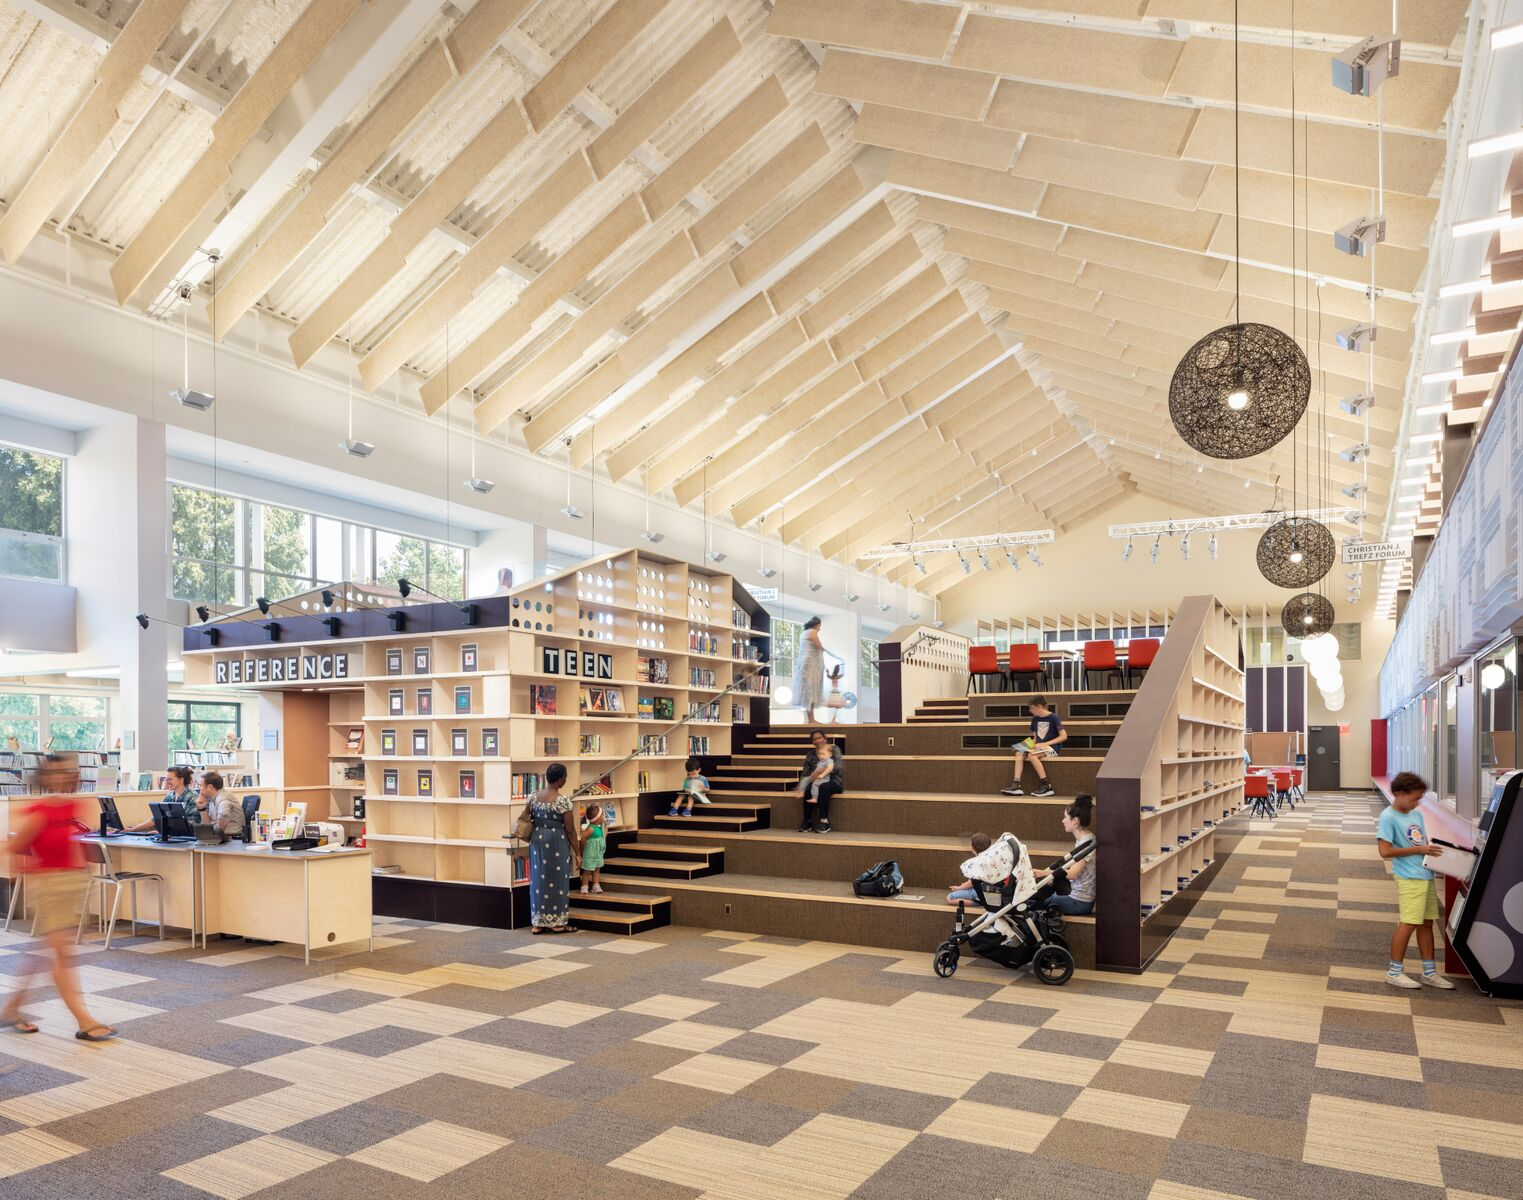 Westport Library, HMA2 Architects; Photo © Chris Payne / ESTO